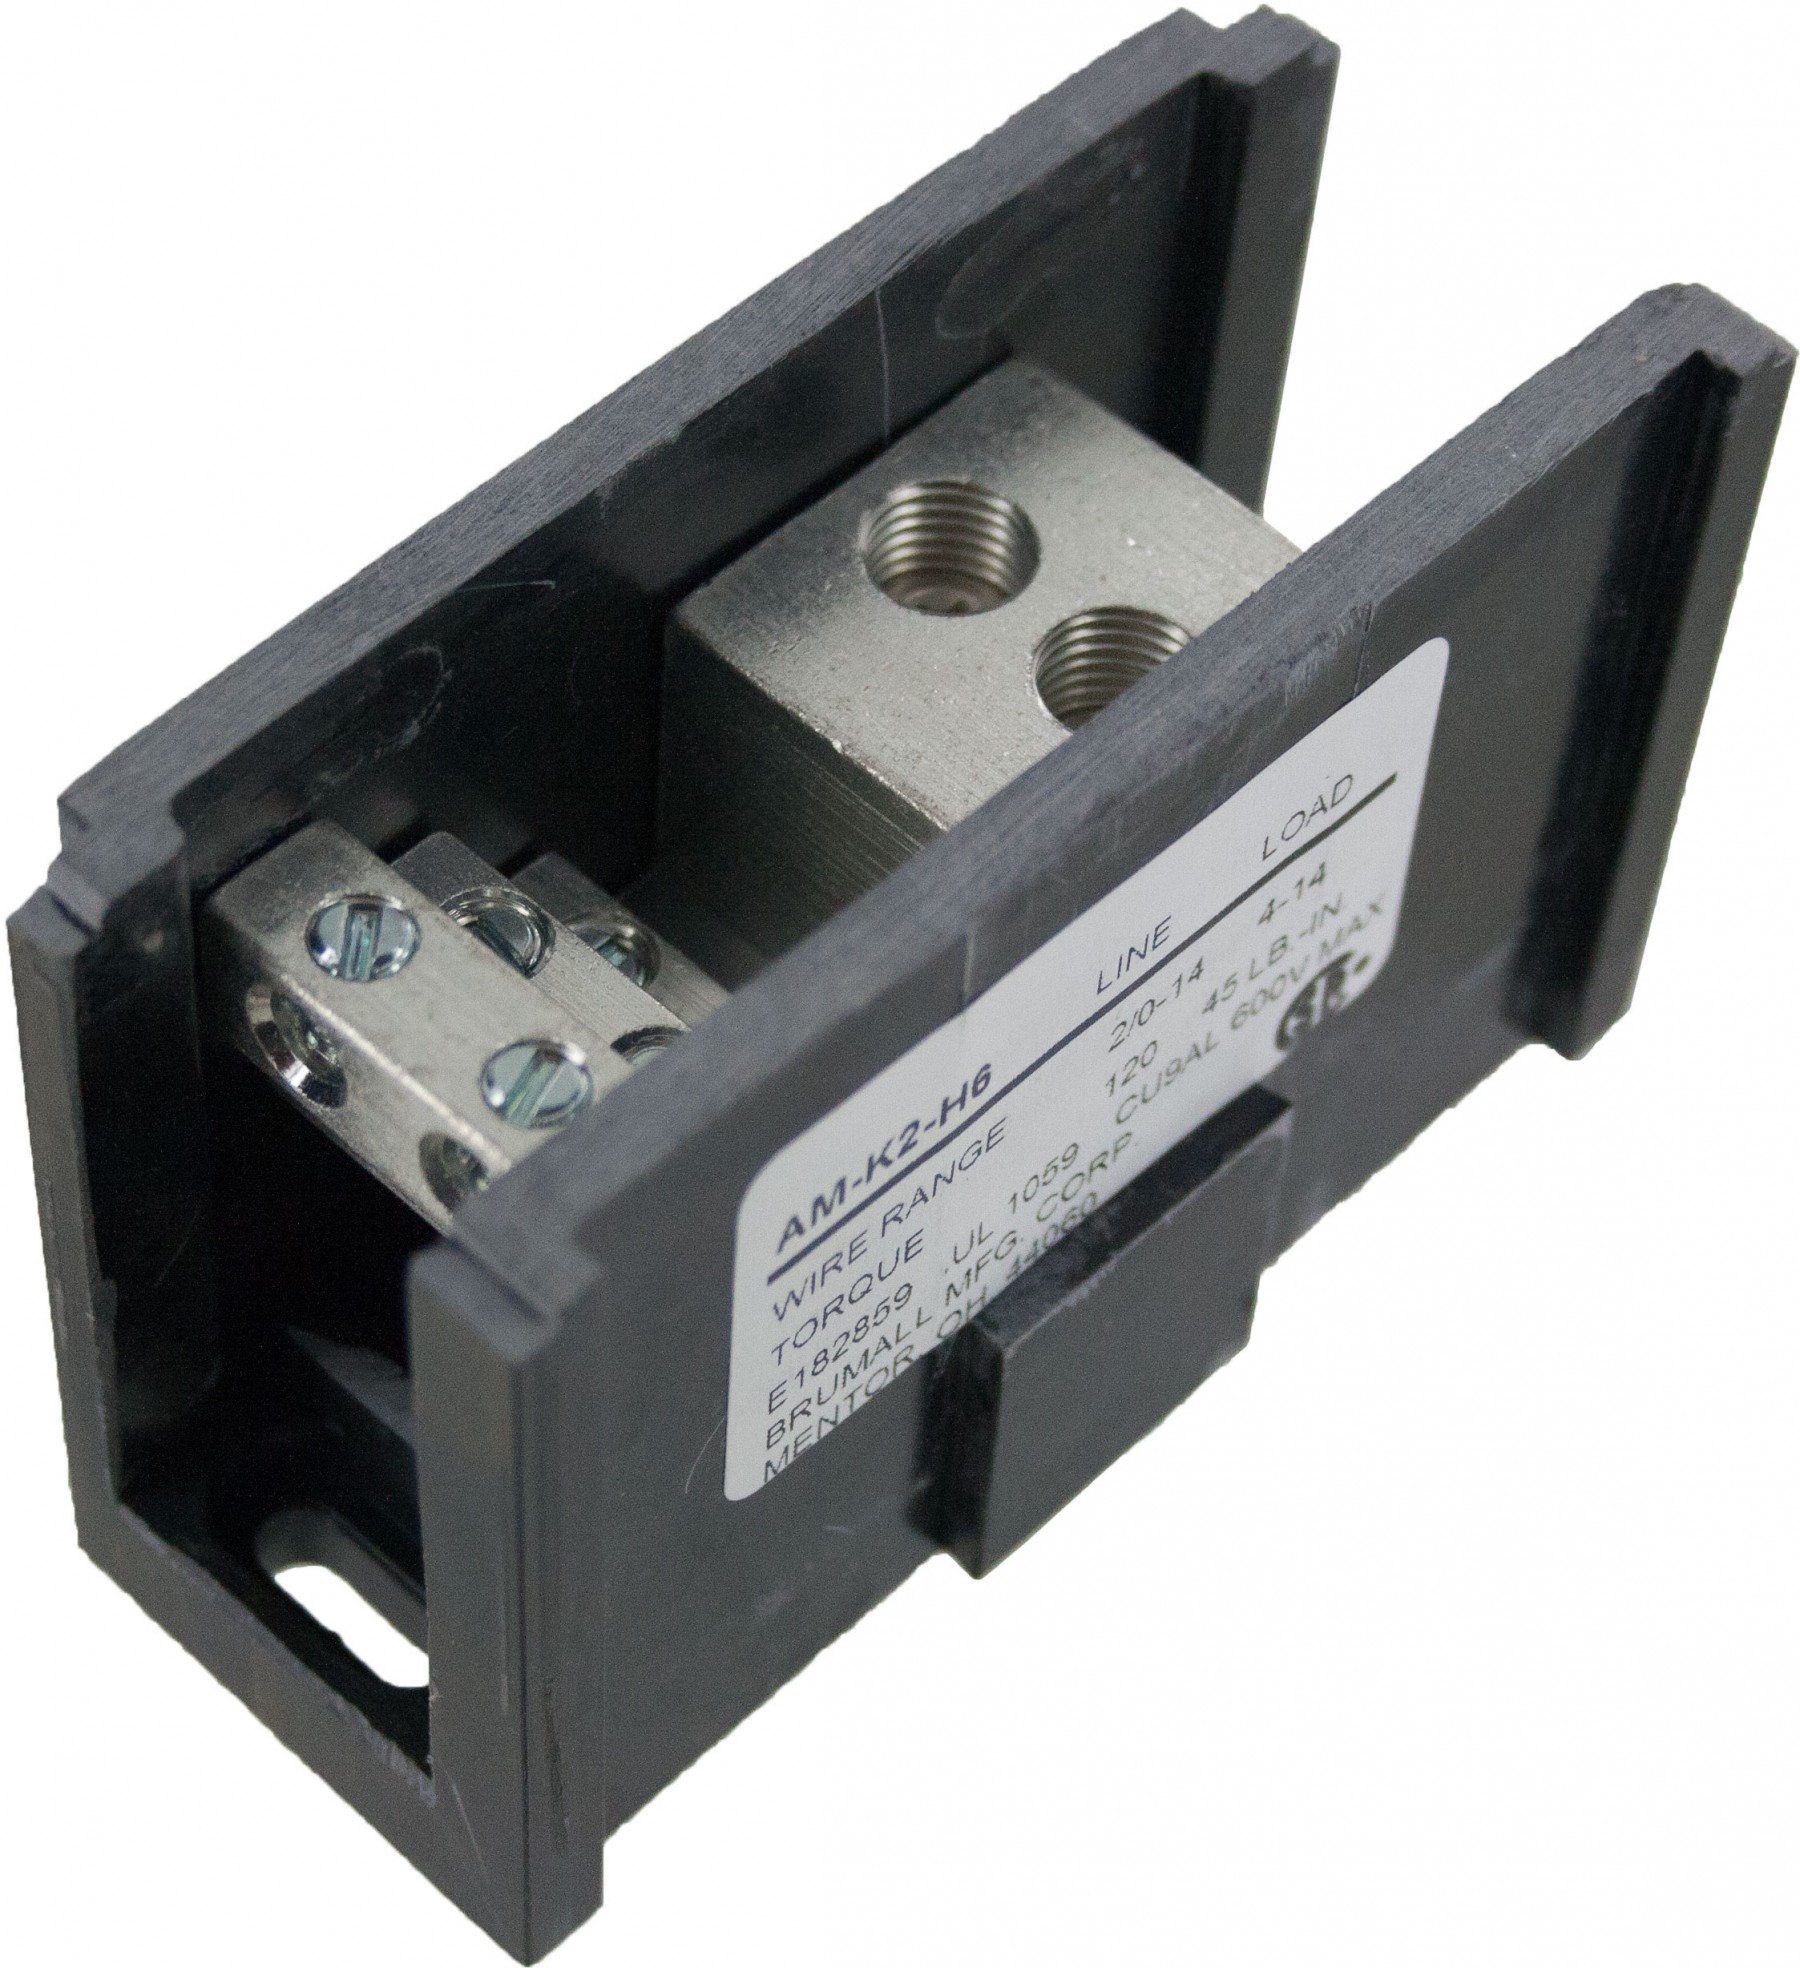 Power Distribution Blocks Double Run 14 2 0 Awg Adb262 01 Wiring Block Line Side Openings 0awg Load 6 4awg Am K2 H6